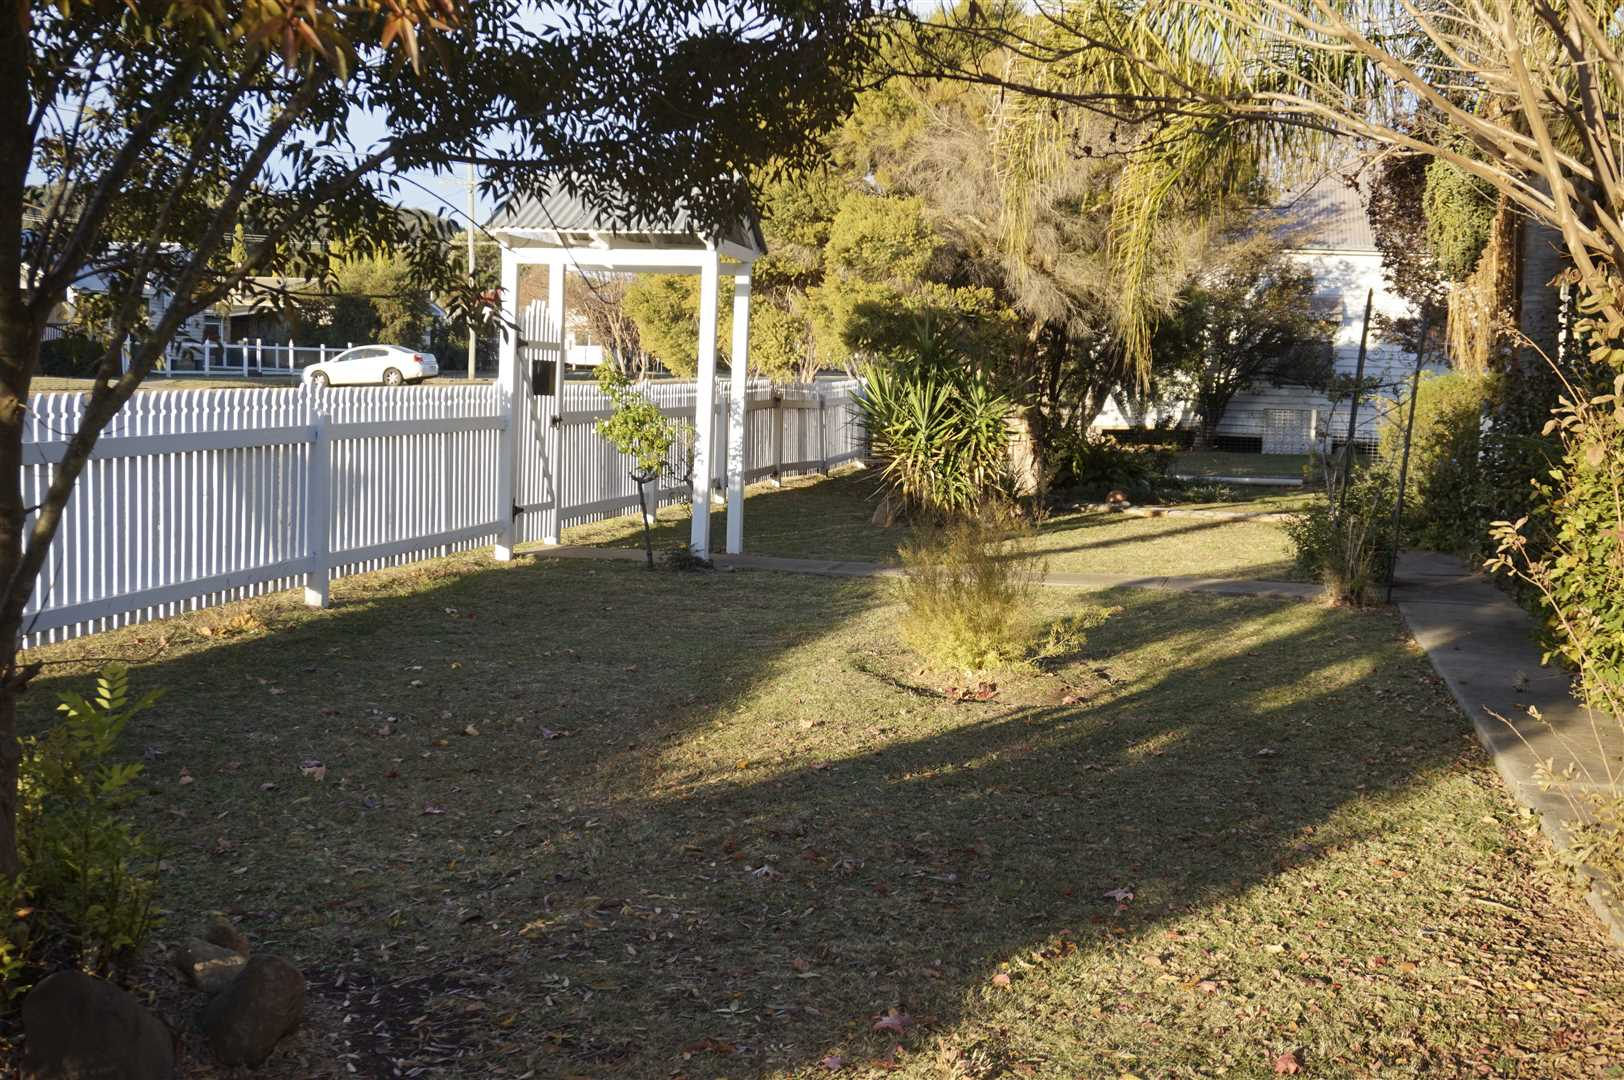 Gardens and Picket Fence